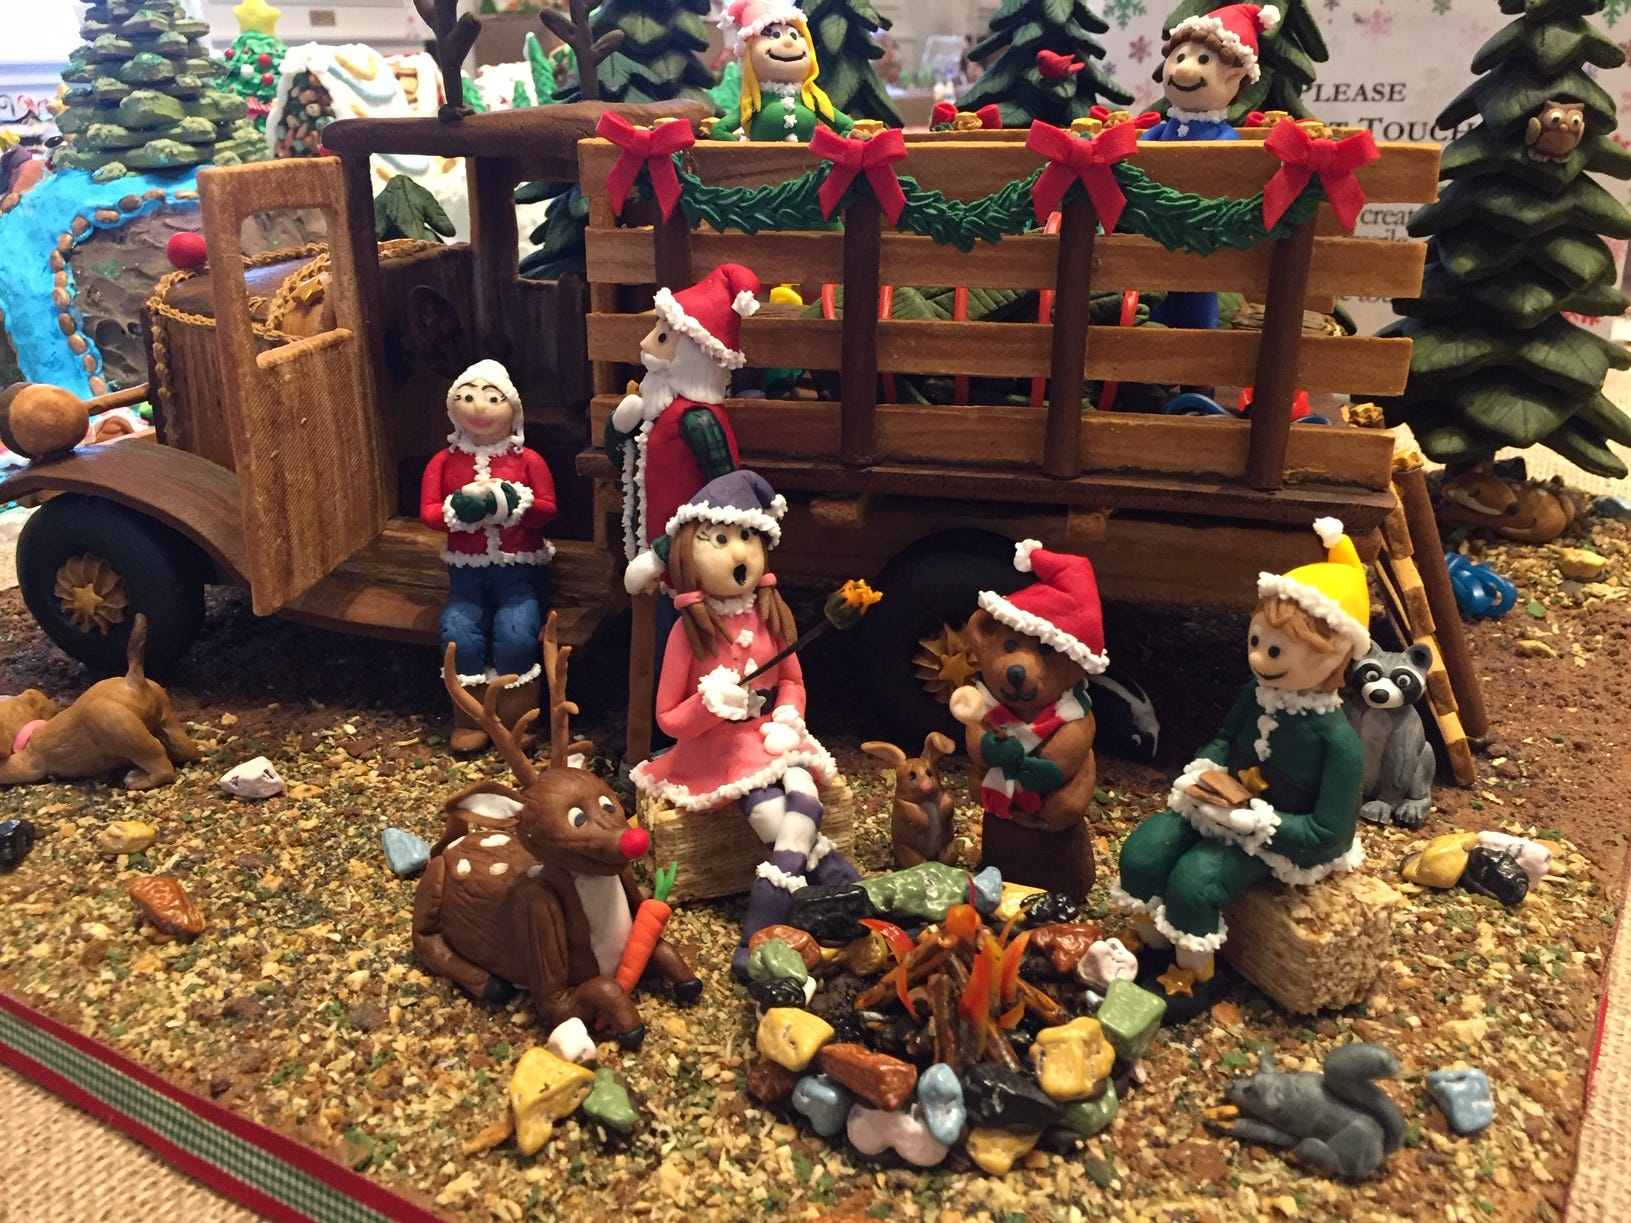 """Deck the Haul!"" by Barb Amabile of Florham Park at the Gingerbread Wonderland at the Frelinghuysen Arboretum. Adult category."